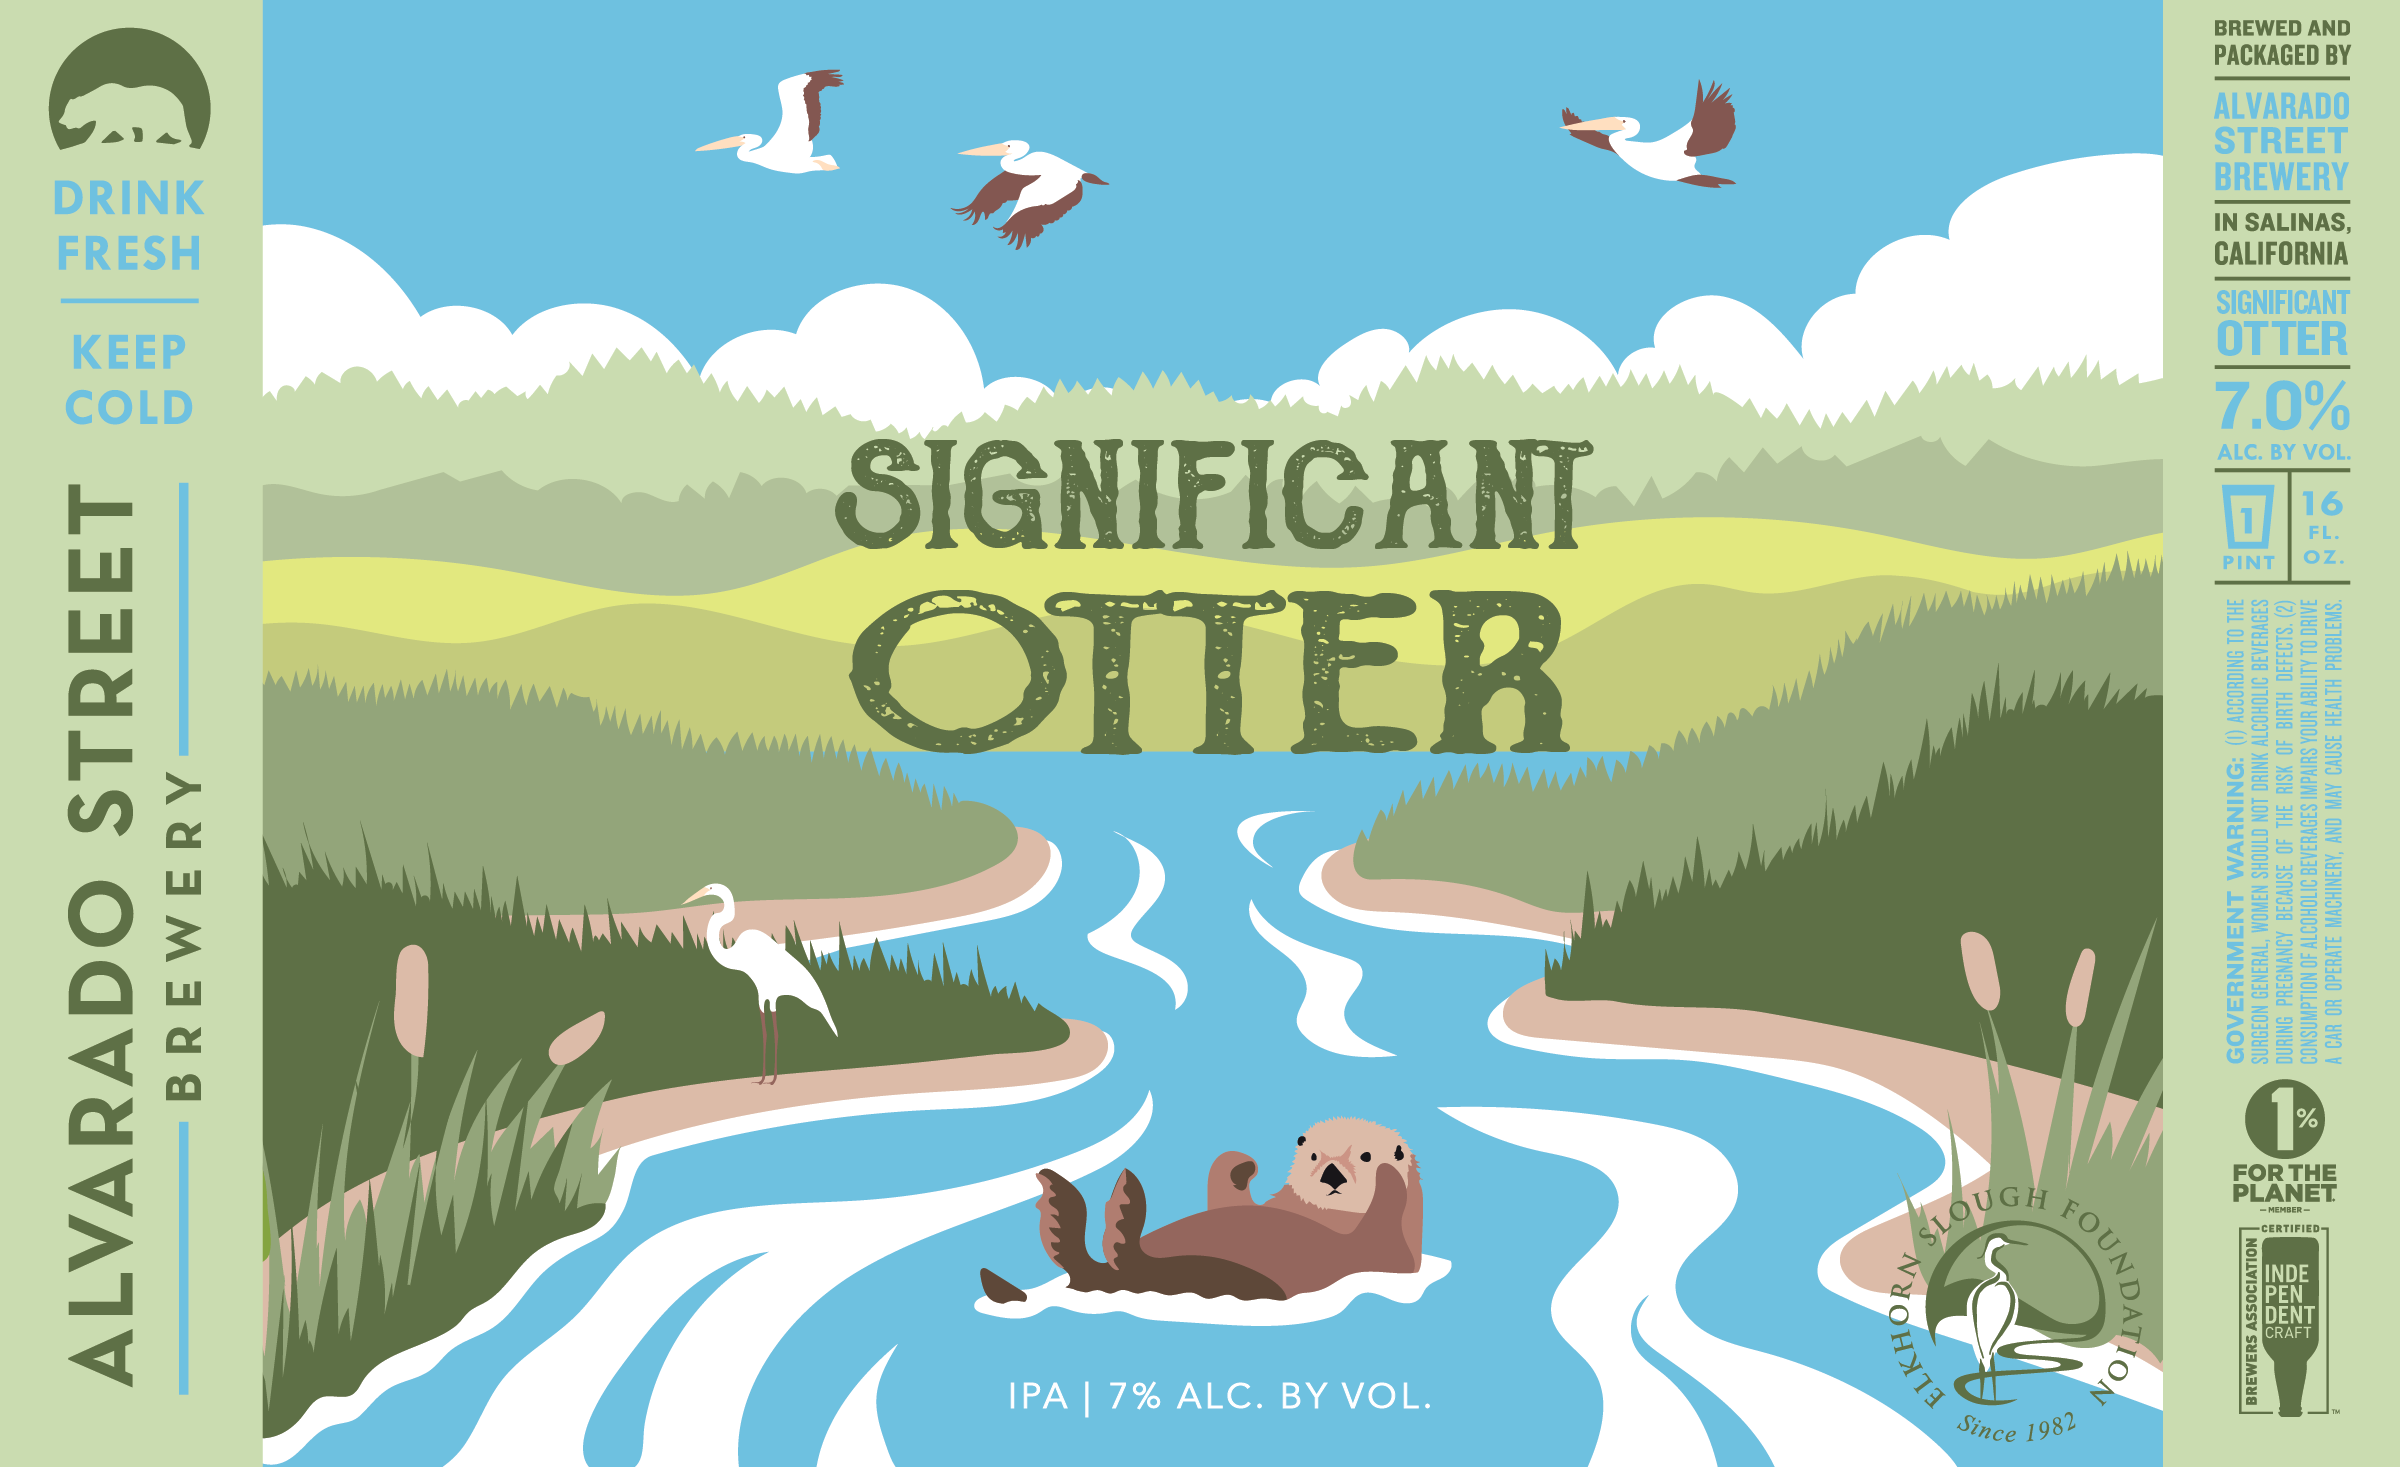 16 oz can-Significant-Otter-01.png